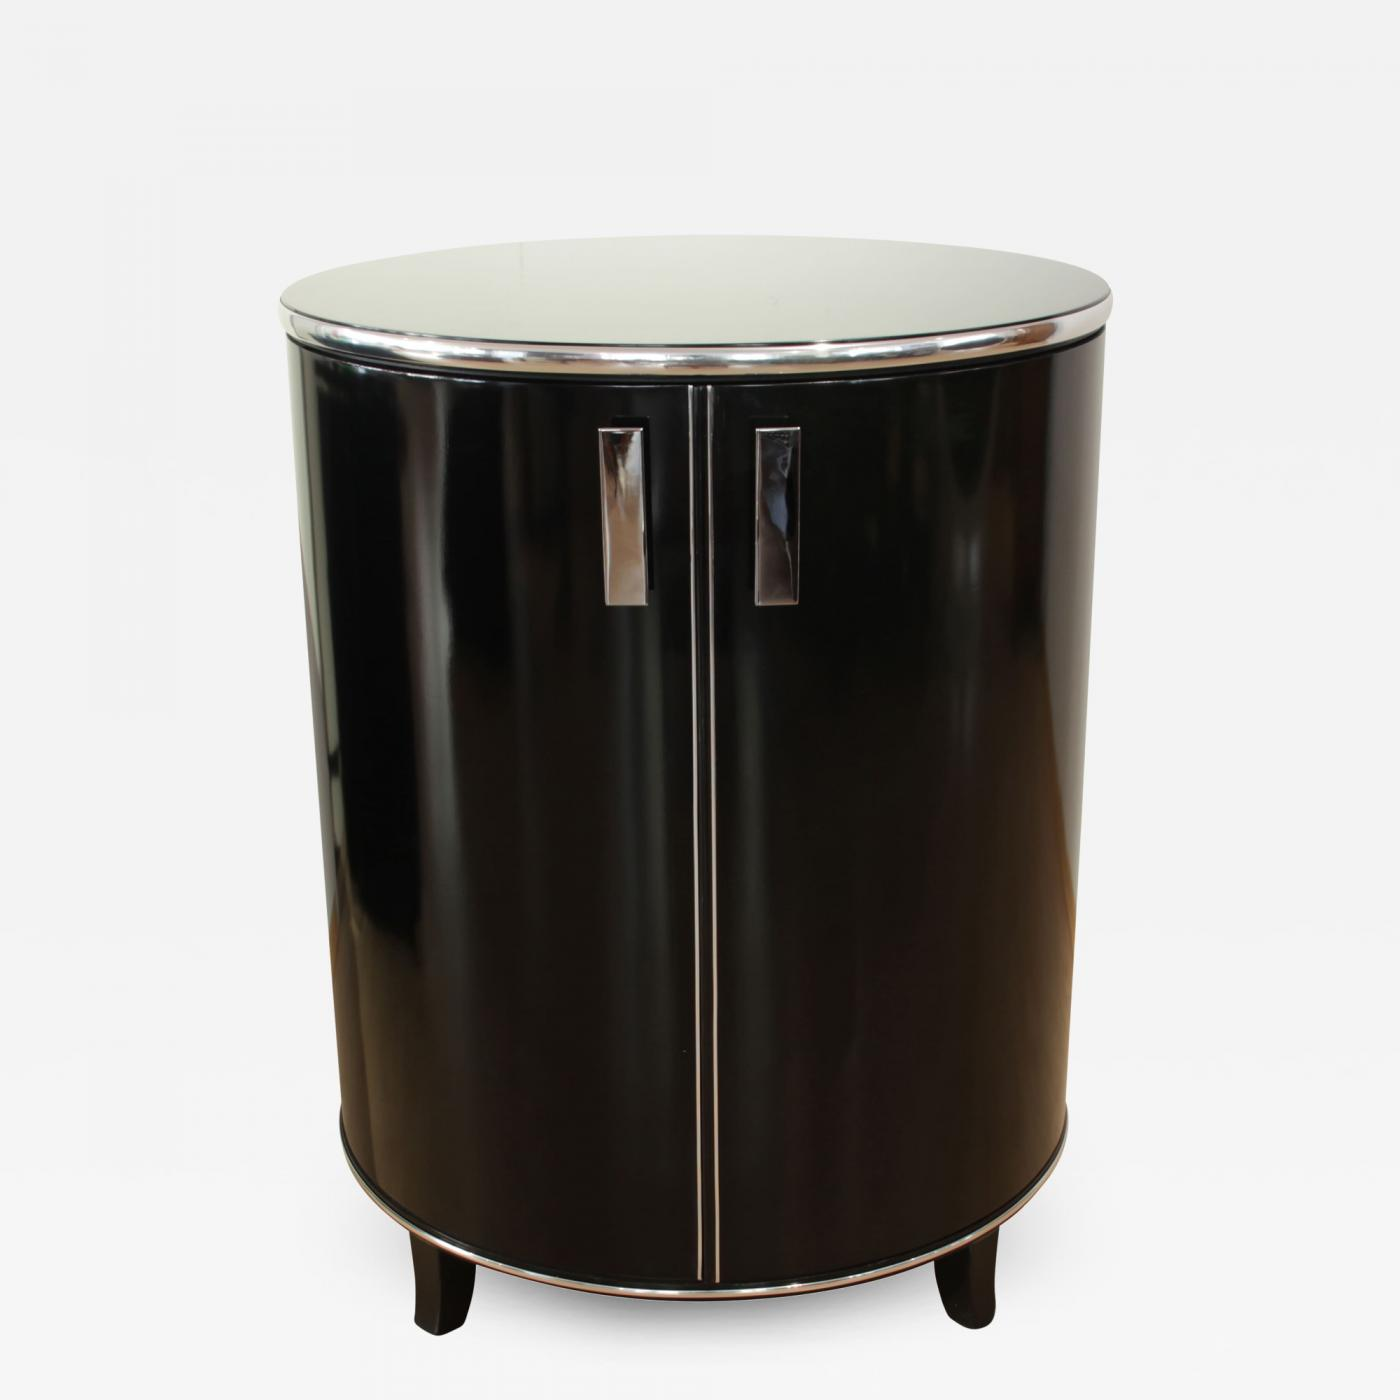 Art Deco Möbel Shop Round Art Deco Bar Cabinet Black Polished England Circa 1940